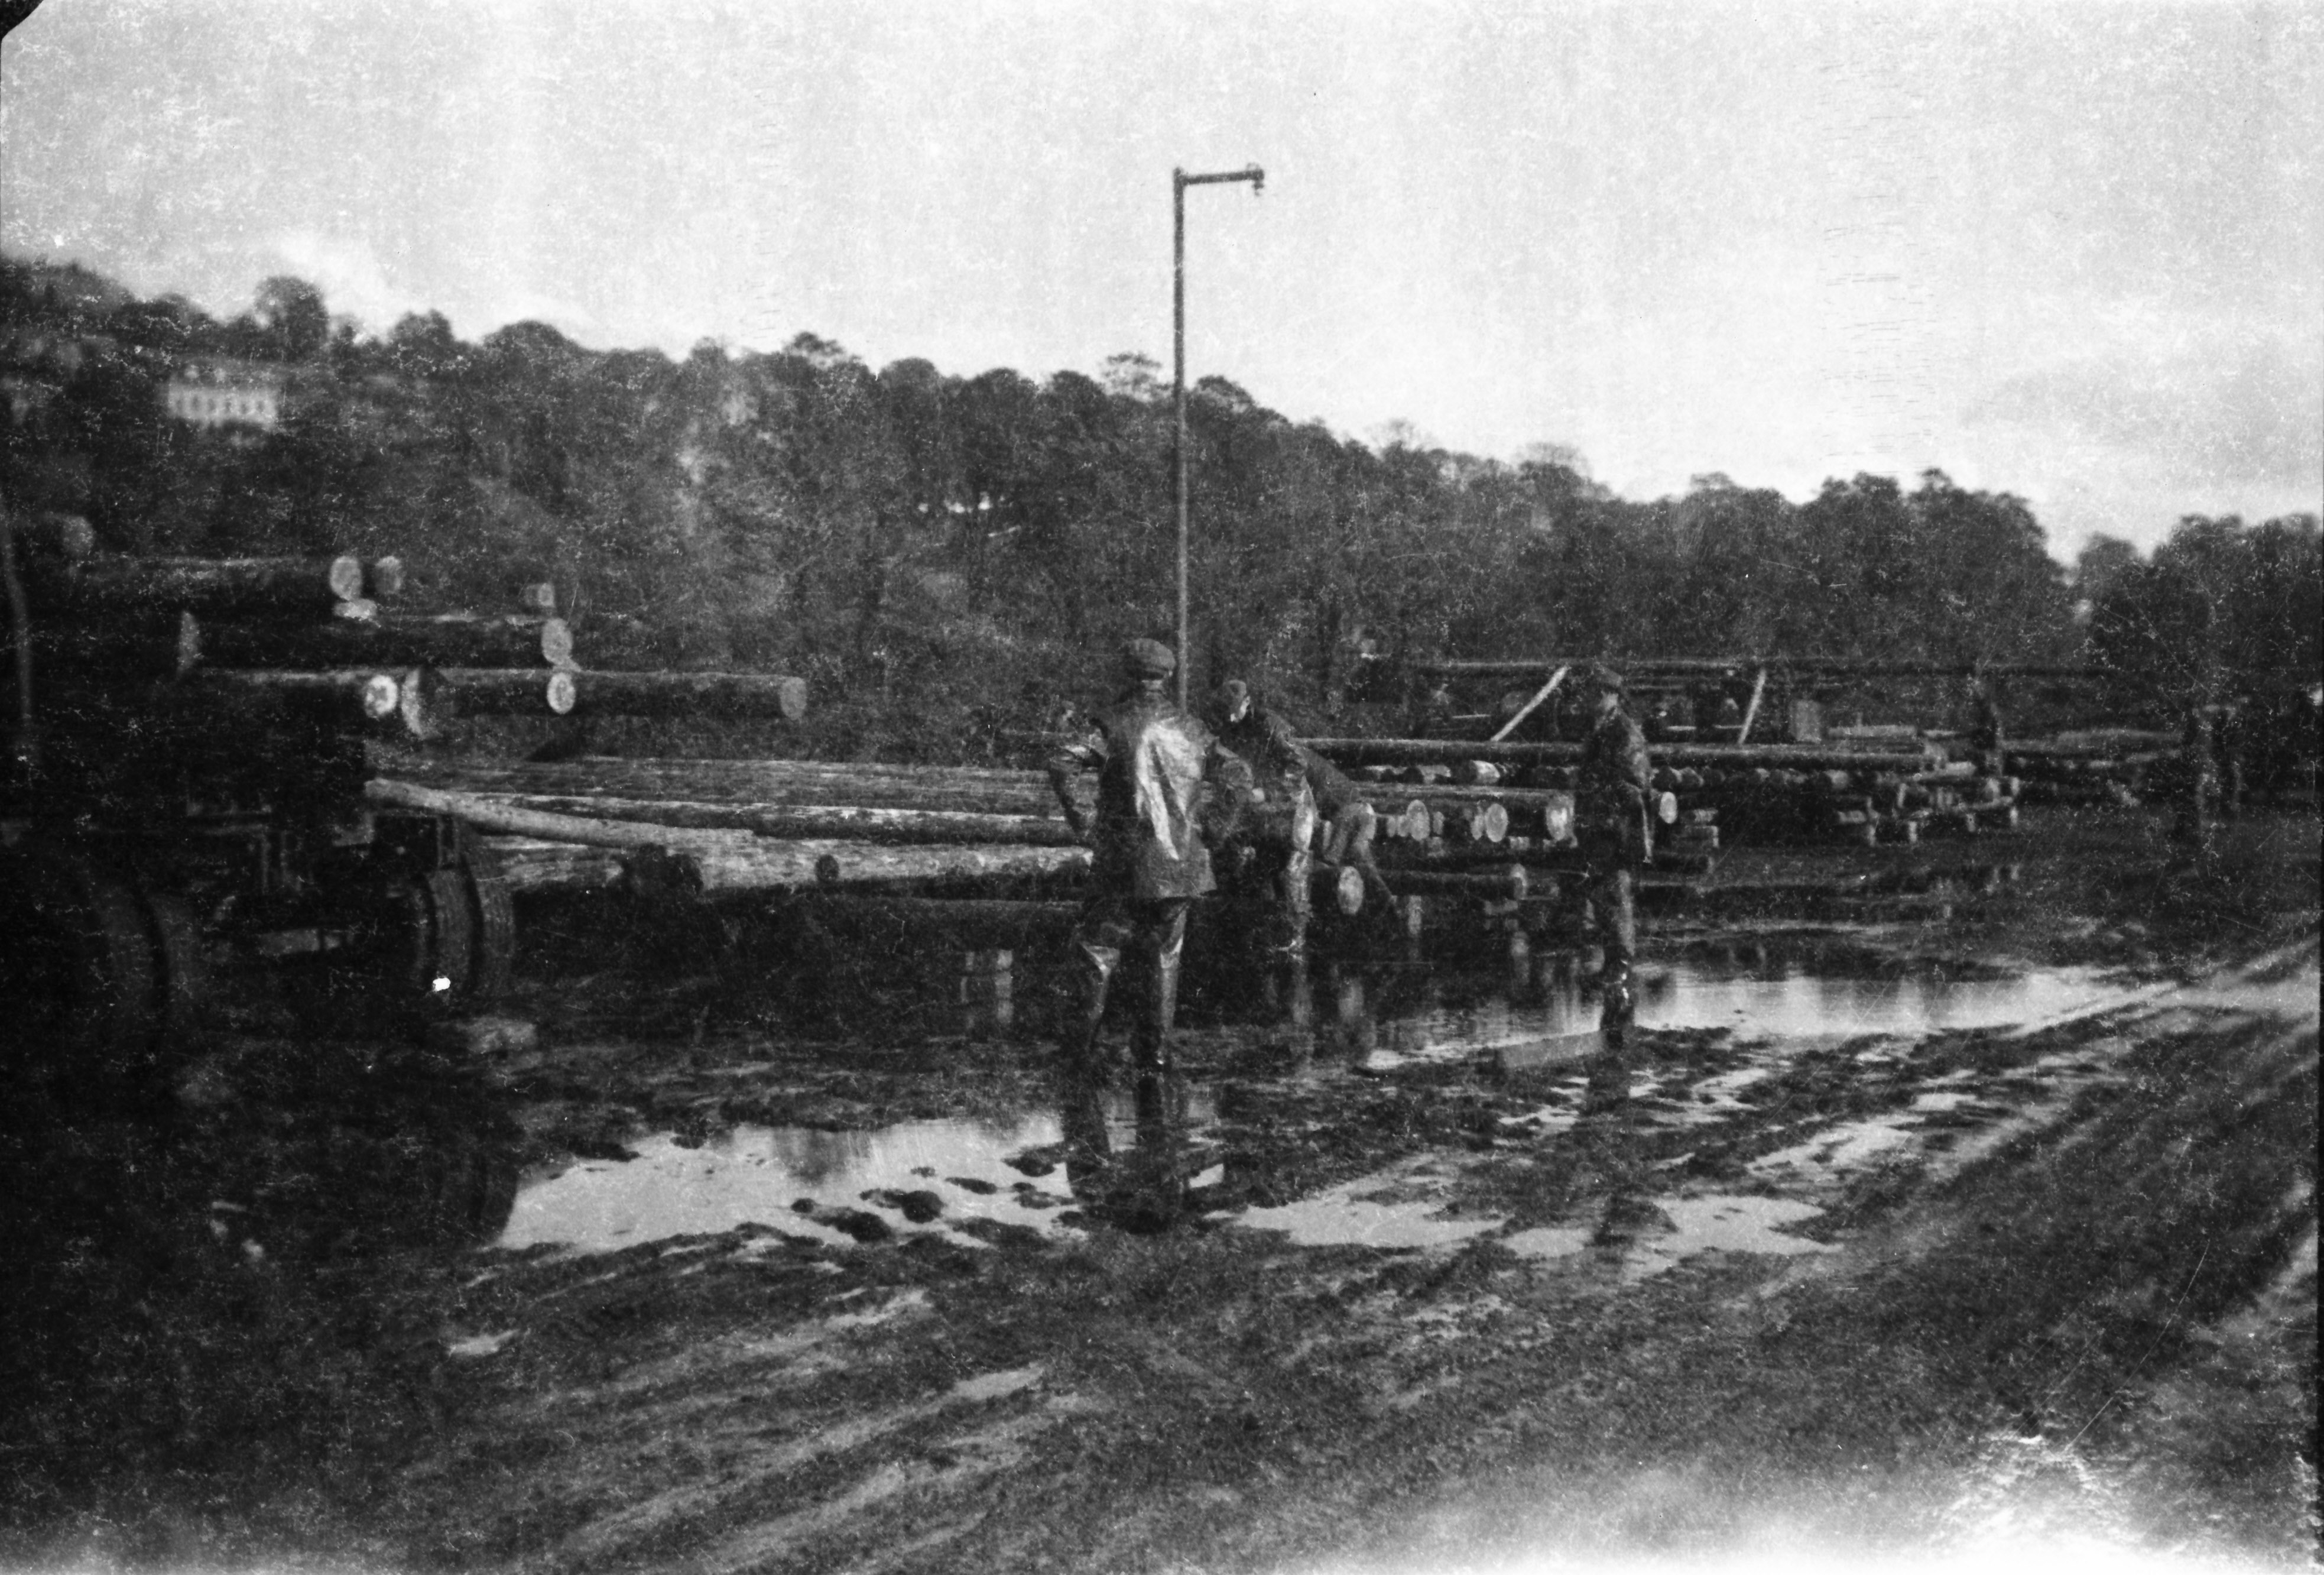 Rural workers in polefield, possibly Cork